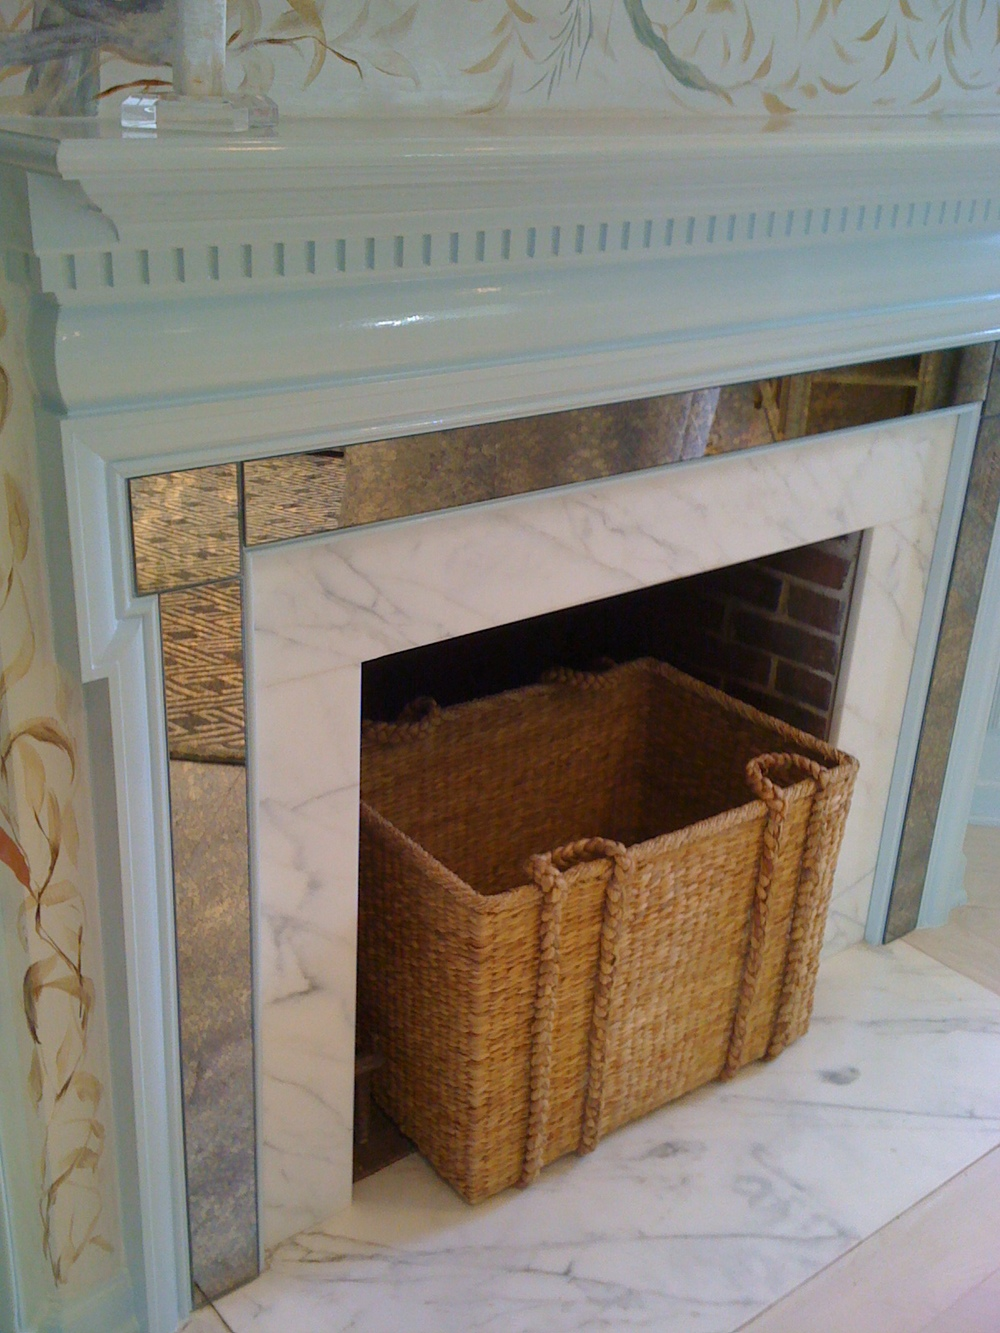 Fireplace Decor Idea - Whicker Basket